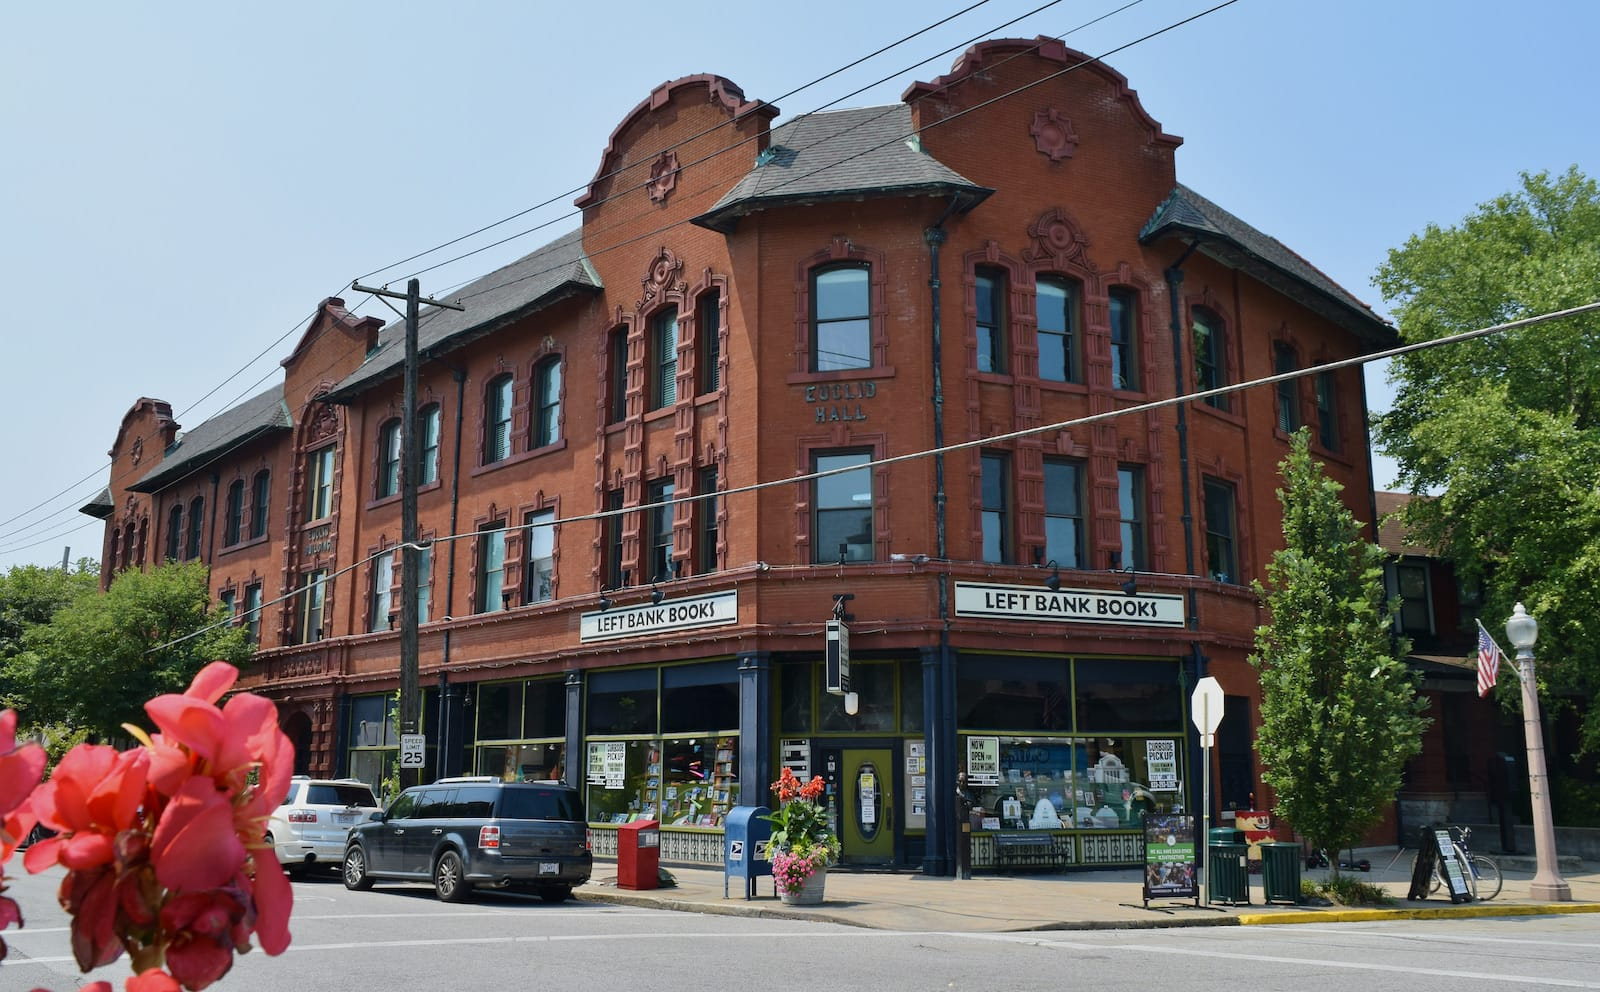 The corner of Left Bank Books in the Central West End